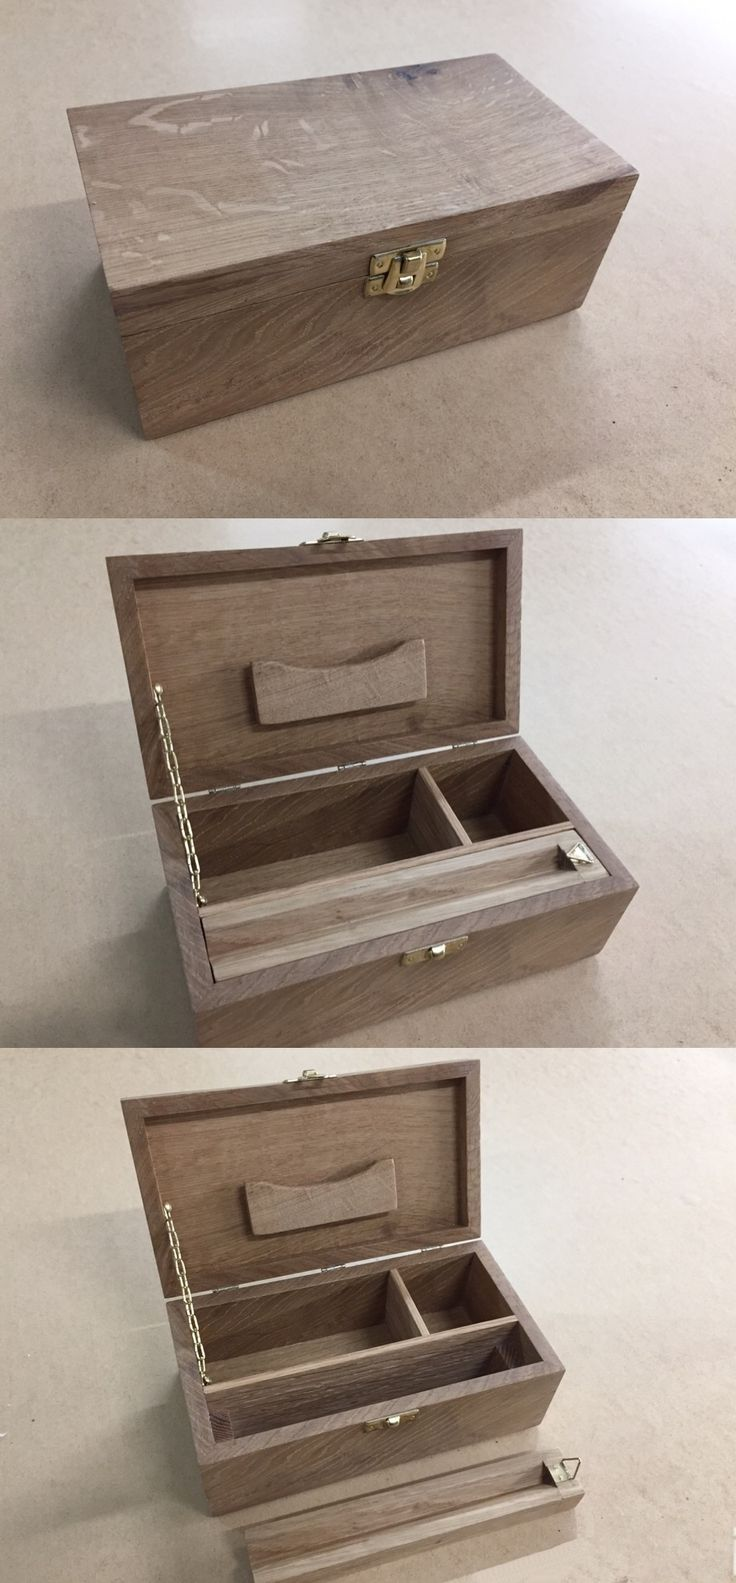 how to grow weed in a box